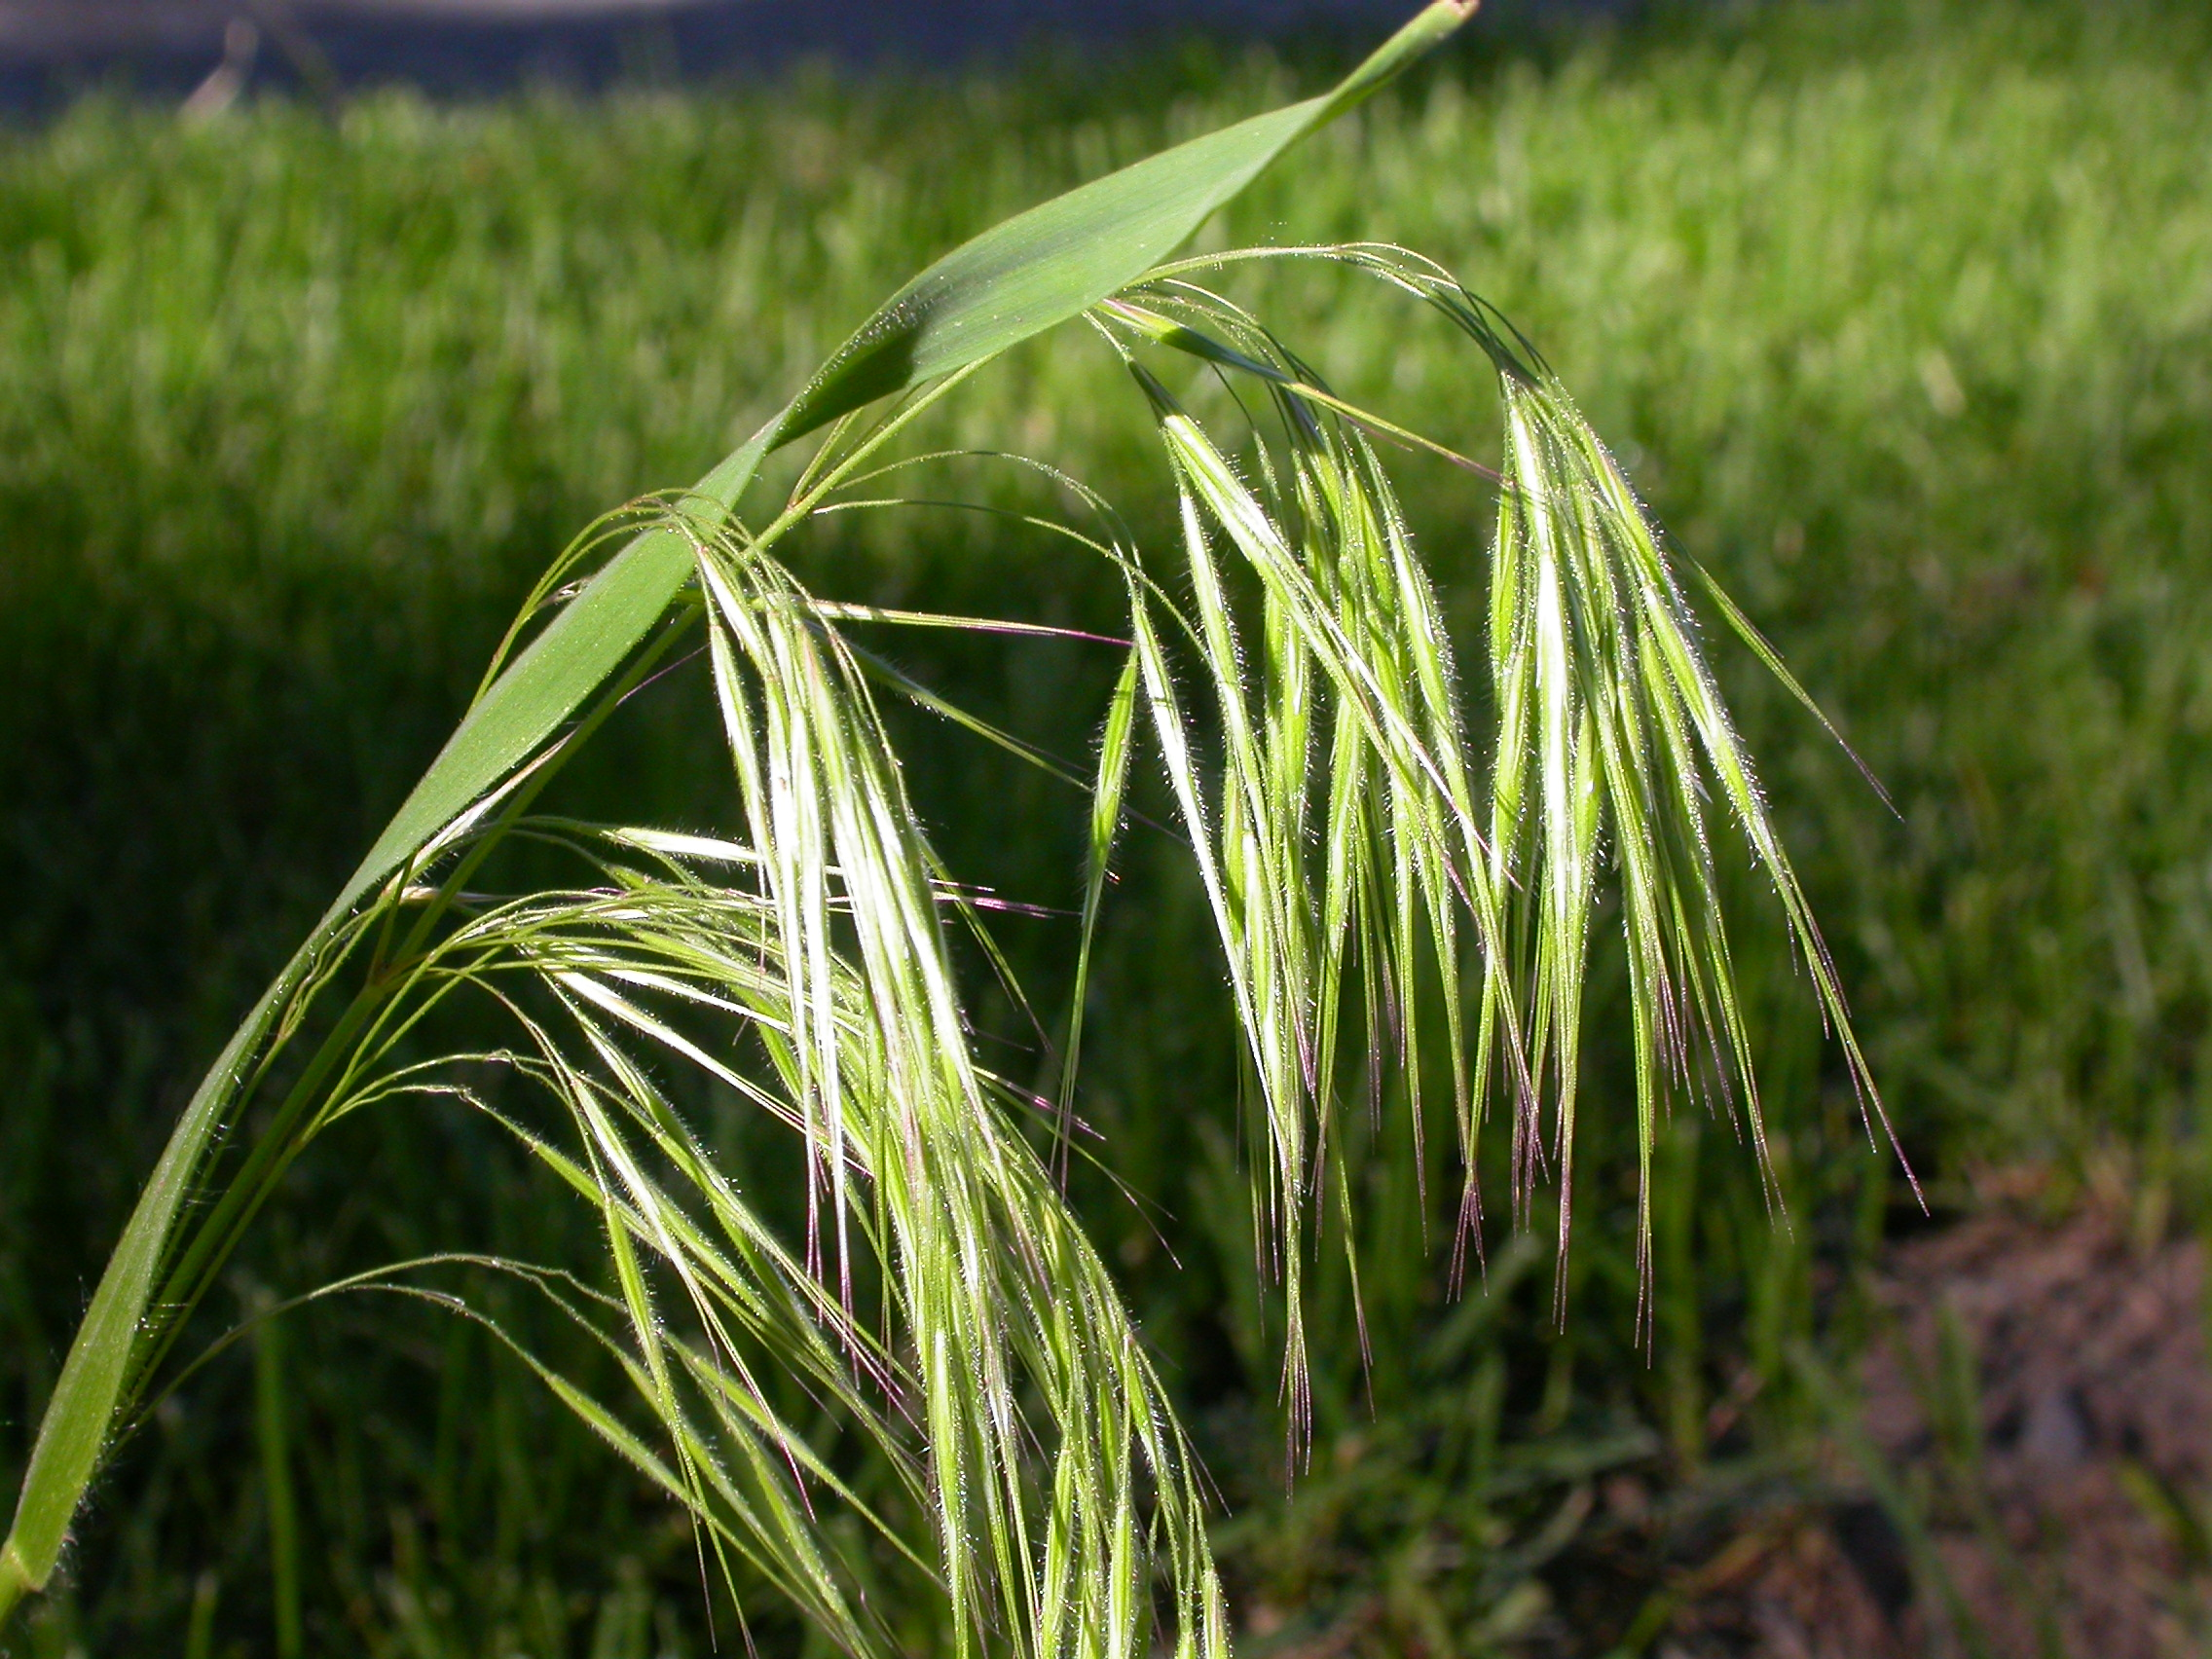 Cheatgrass, the Scourge of the Great Basin Desert, was introduced from Eurasia in the late 19th Century by ranchers and travelers.